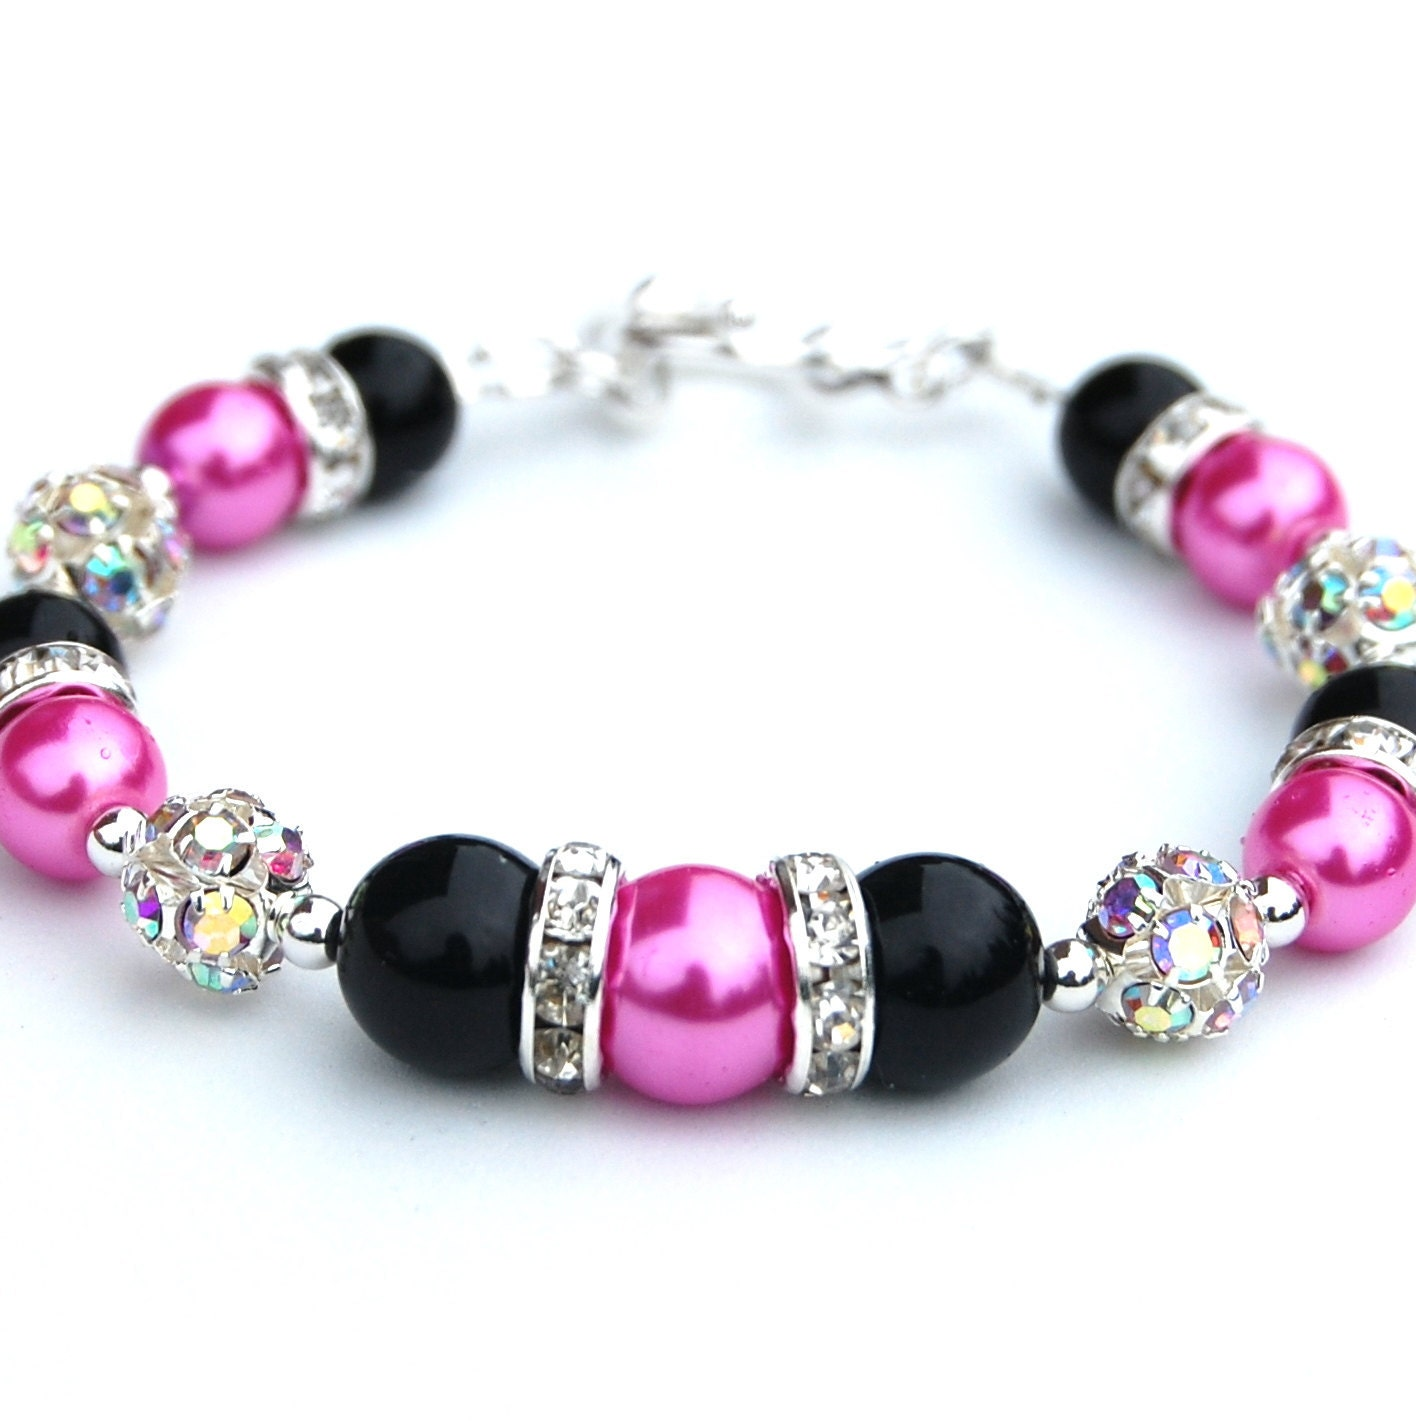 Hot Pink and Black Bridesmaid Bracelet, Rhinestone Pearl Jewelry, Bling Bracelet, Bridal Party